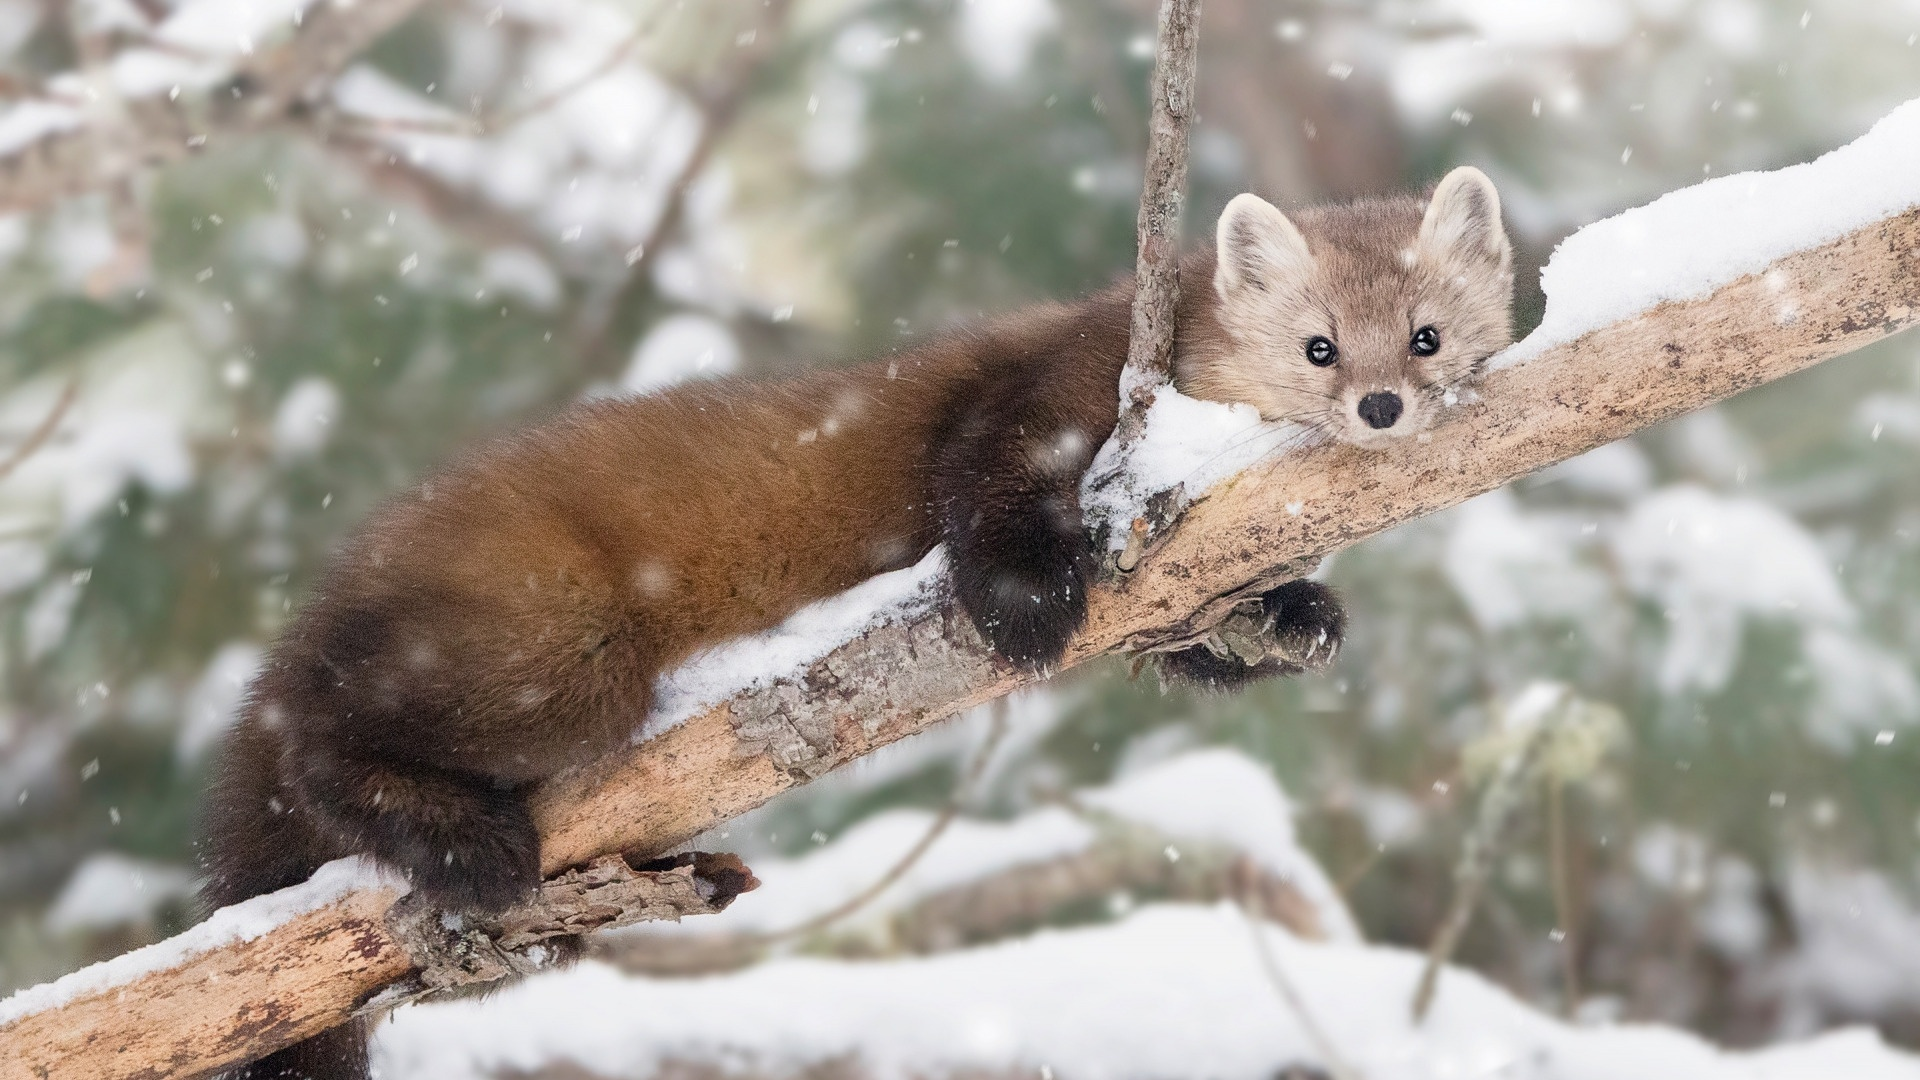 Marten desktop wallpaper hd